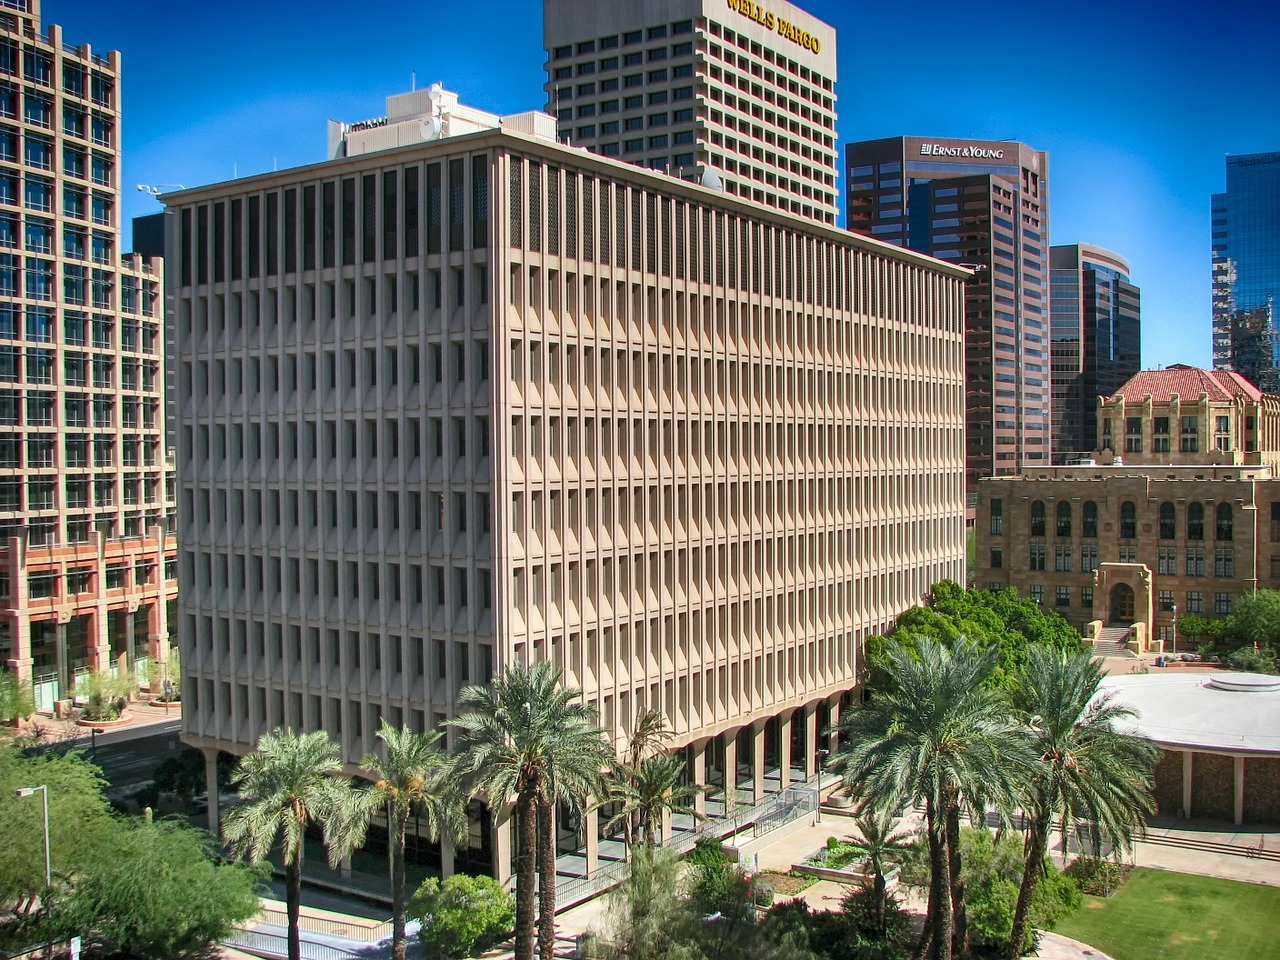 phoenix 10 Most Popular Event Cities To Host A Speaker Event